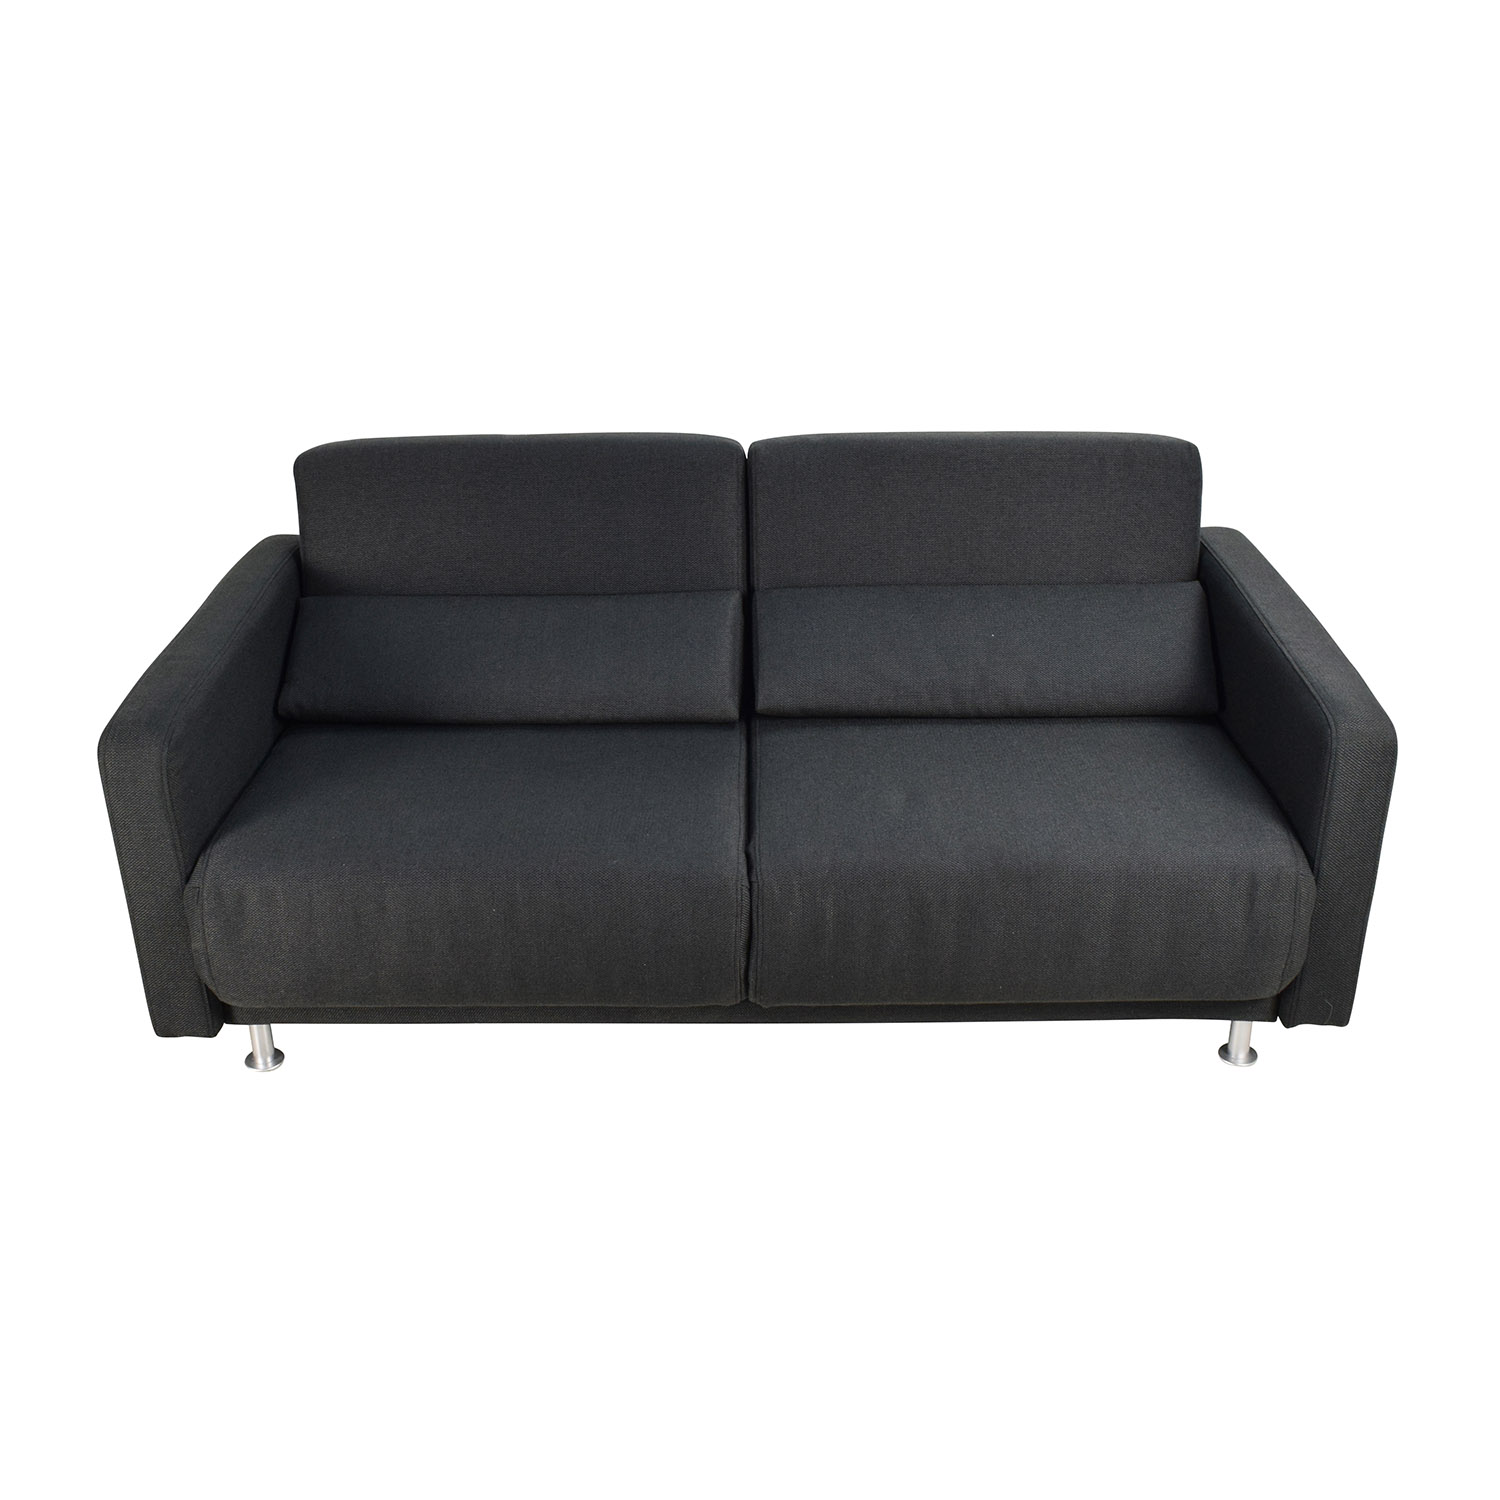 Bo concept sofas corner sofa modular contemporary fabric for Bo concept